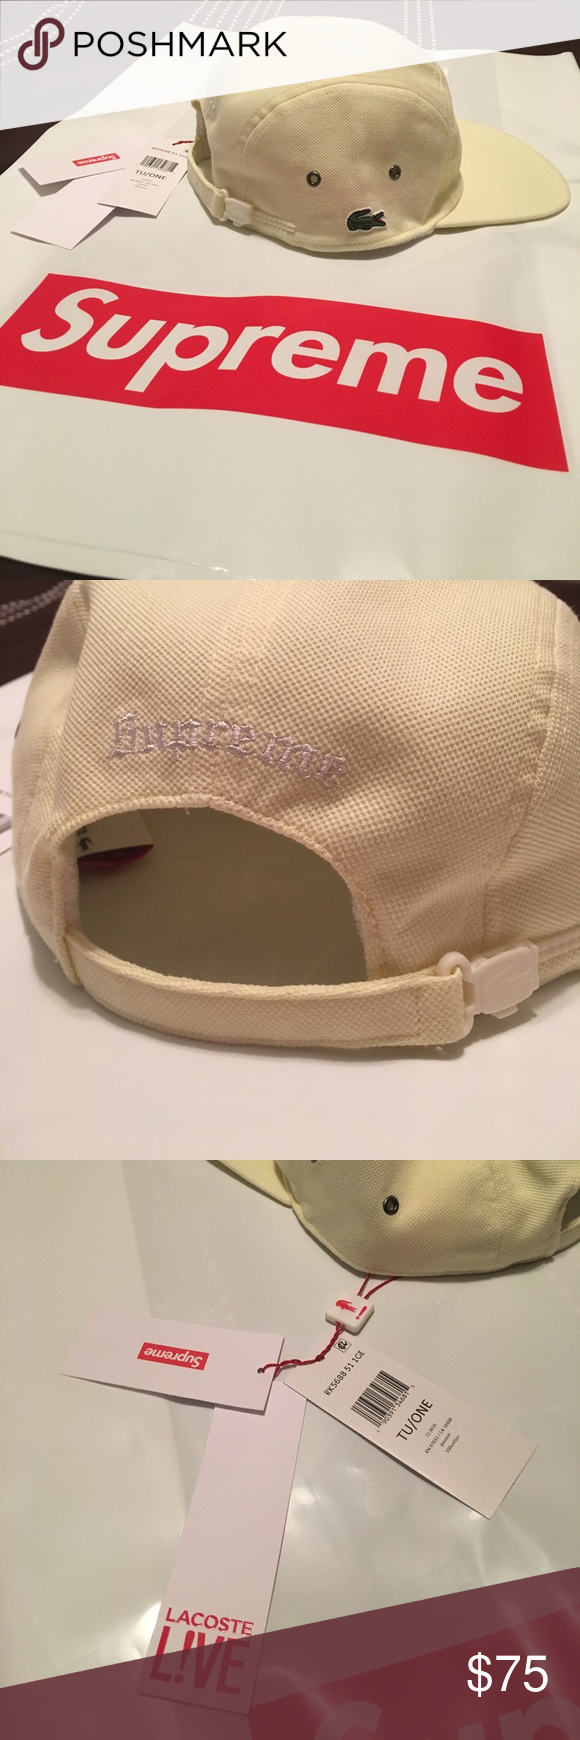 Supreme x Lacoste Cap Light Yellow with tags Supreme + Lacoste SS17  collaboration c9161a9080be